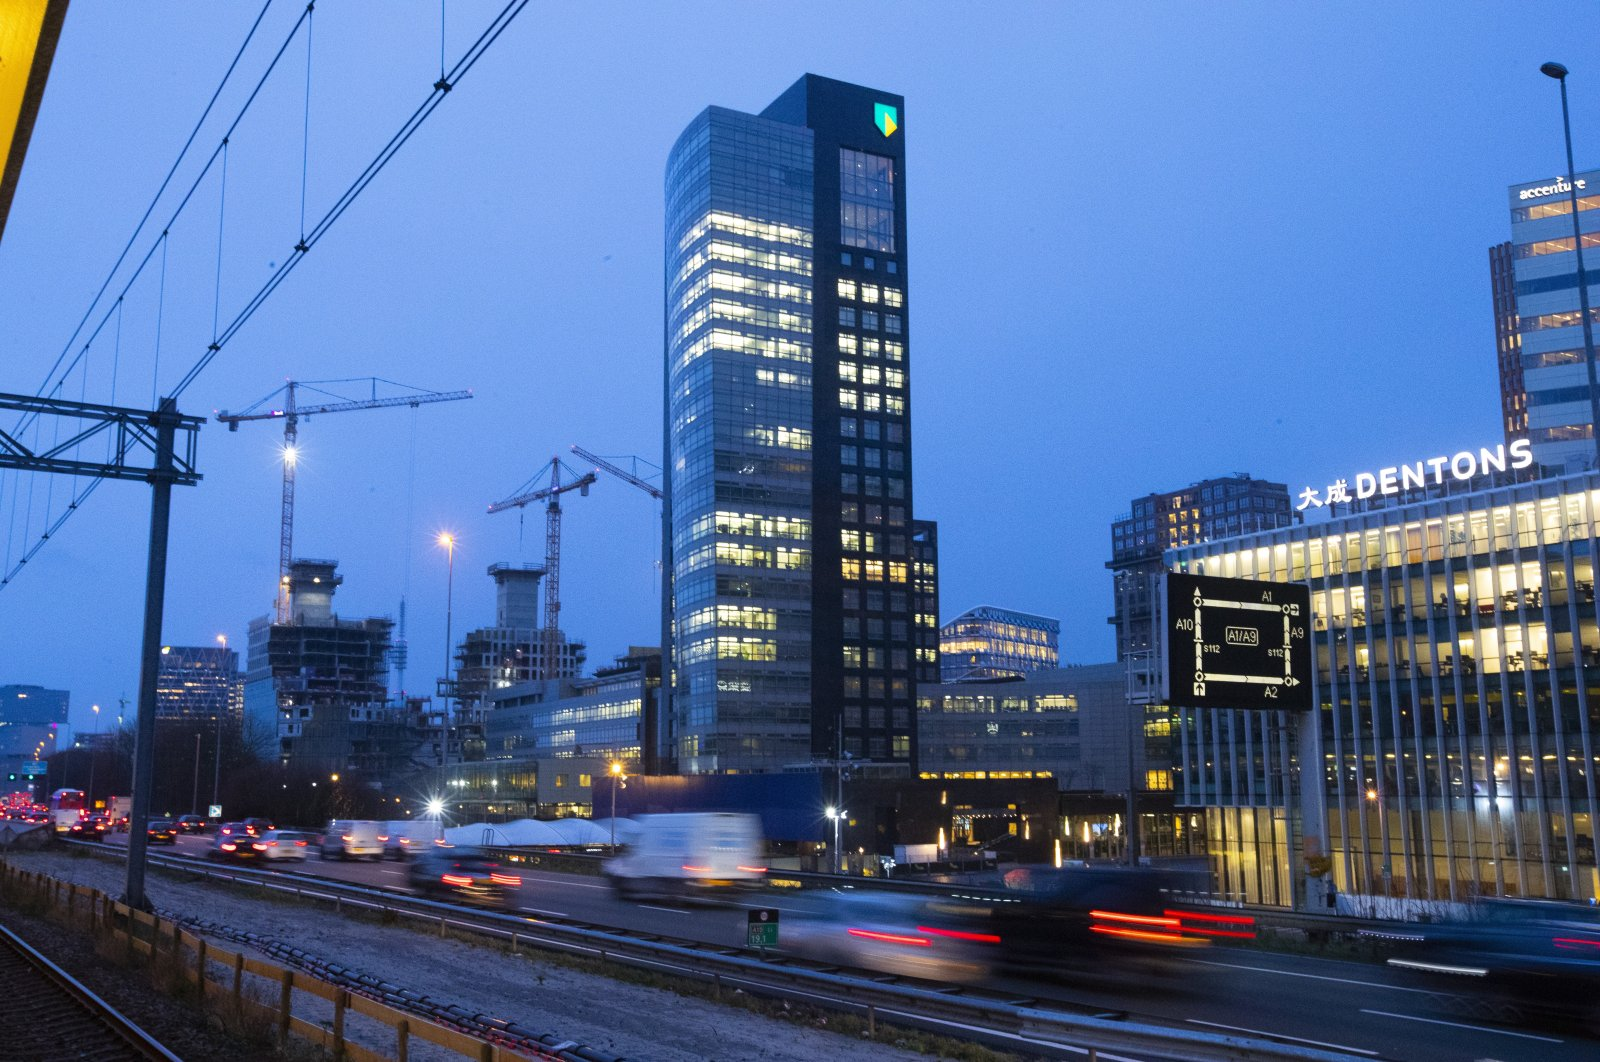 The ABN AMRO head office is seen in the capital's business district, in Amsterdam, the Netherlands, March 2, 2020. (AP Photo)